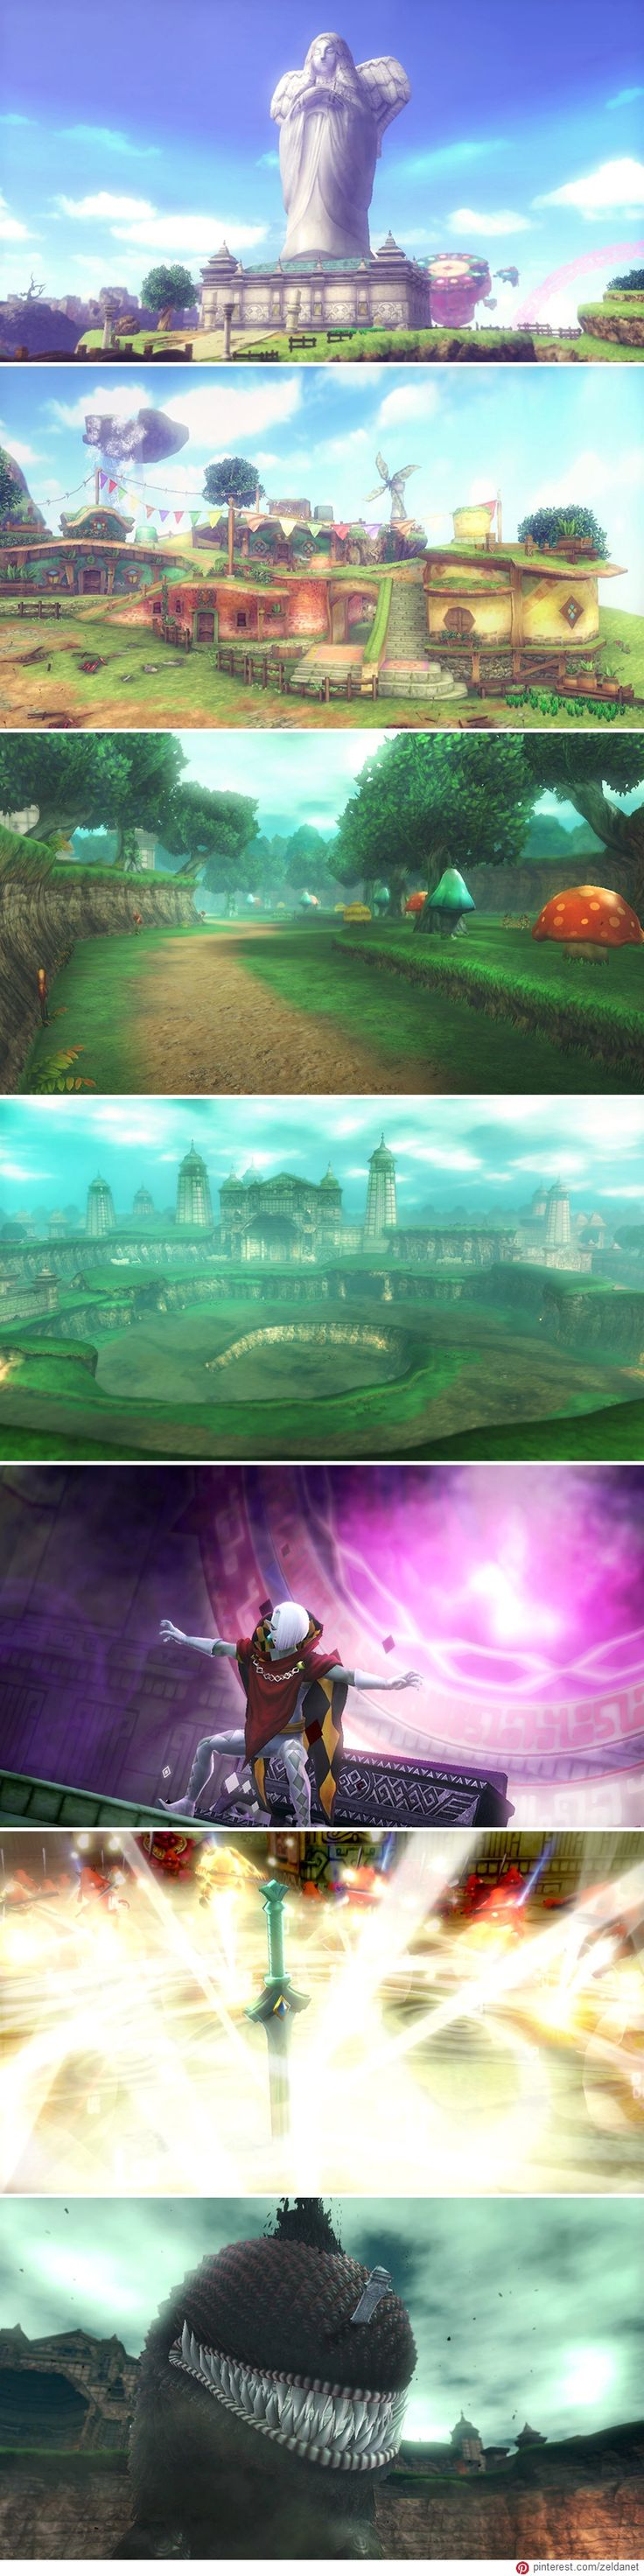 Hyrule Warriors: Skyward Sword update (July 2014) - #Skyward_Sword stage montage by http://www.pinterest.com/zeldanet